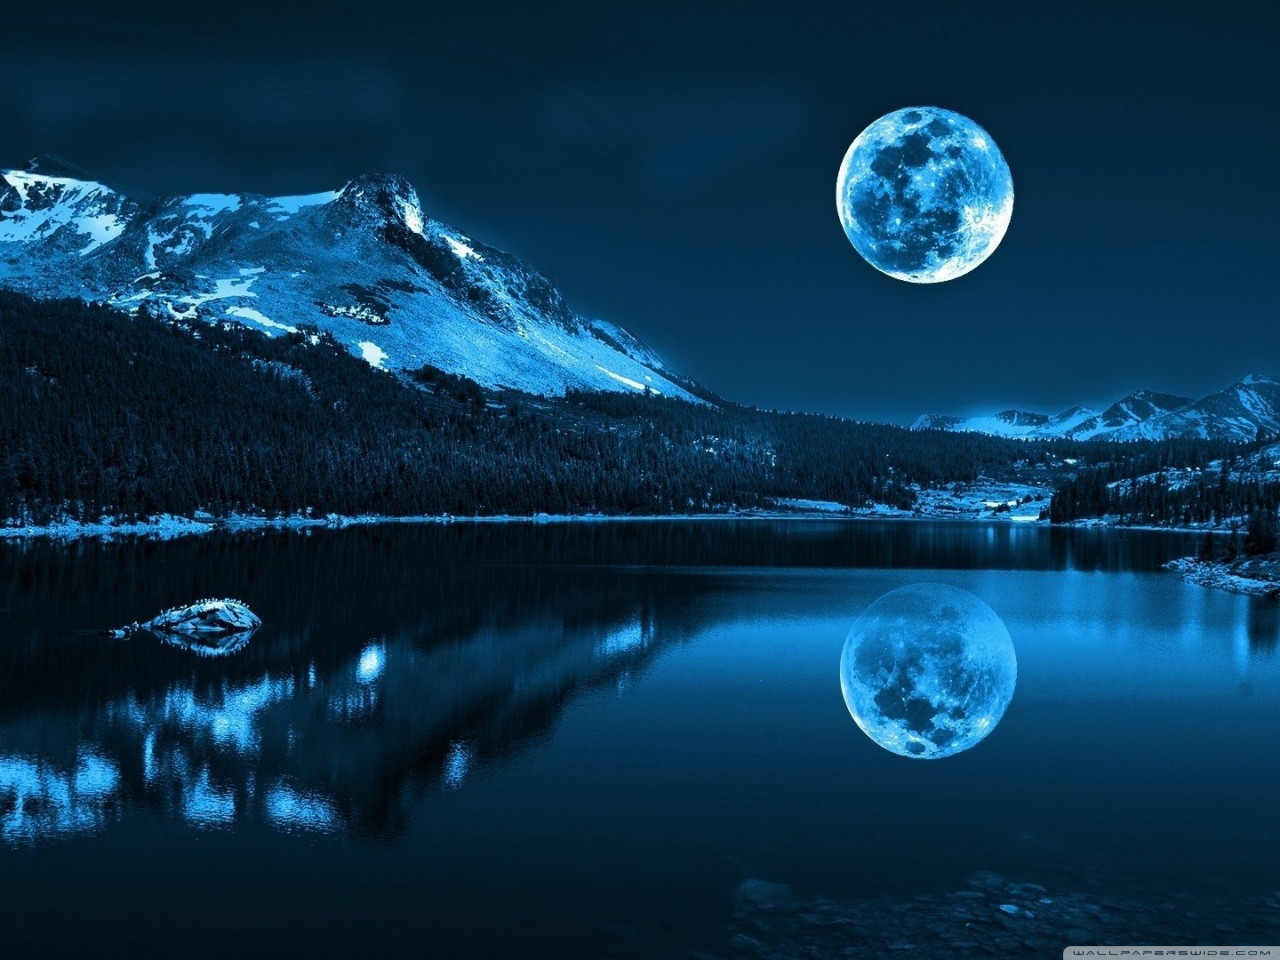 Download Moonlight night wallpapers | Most beautiful ...